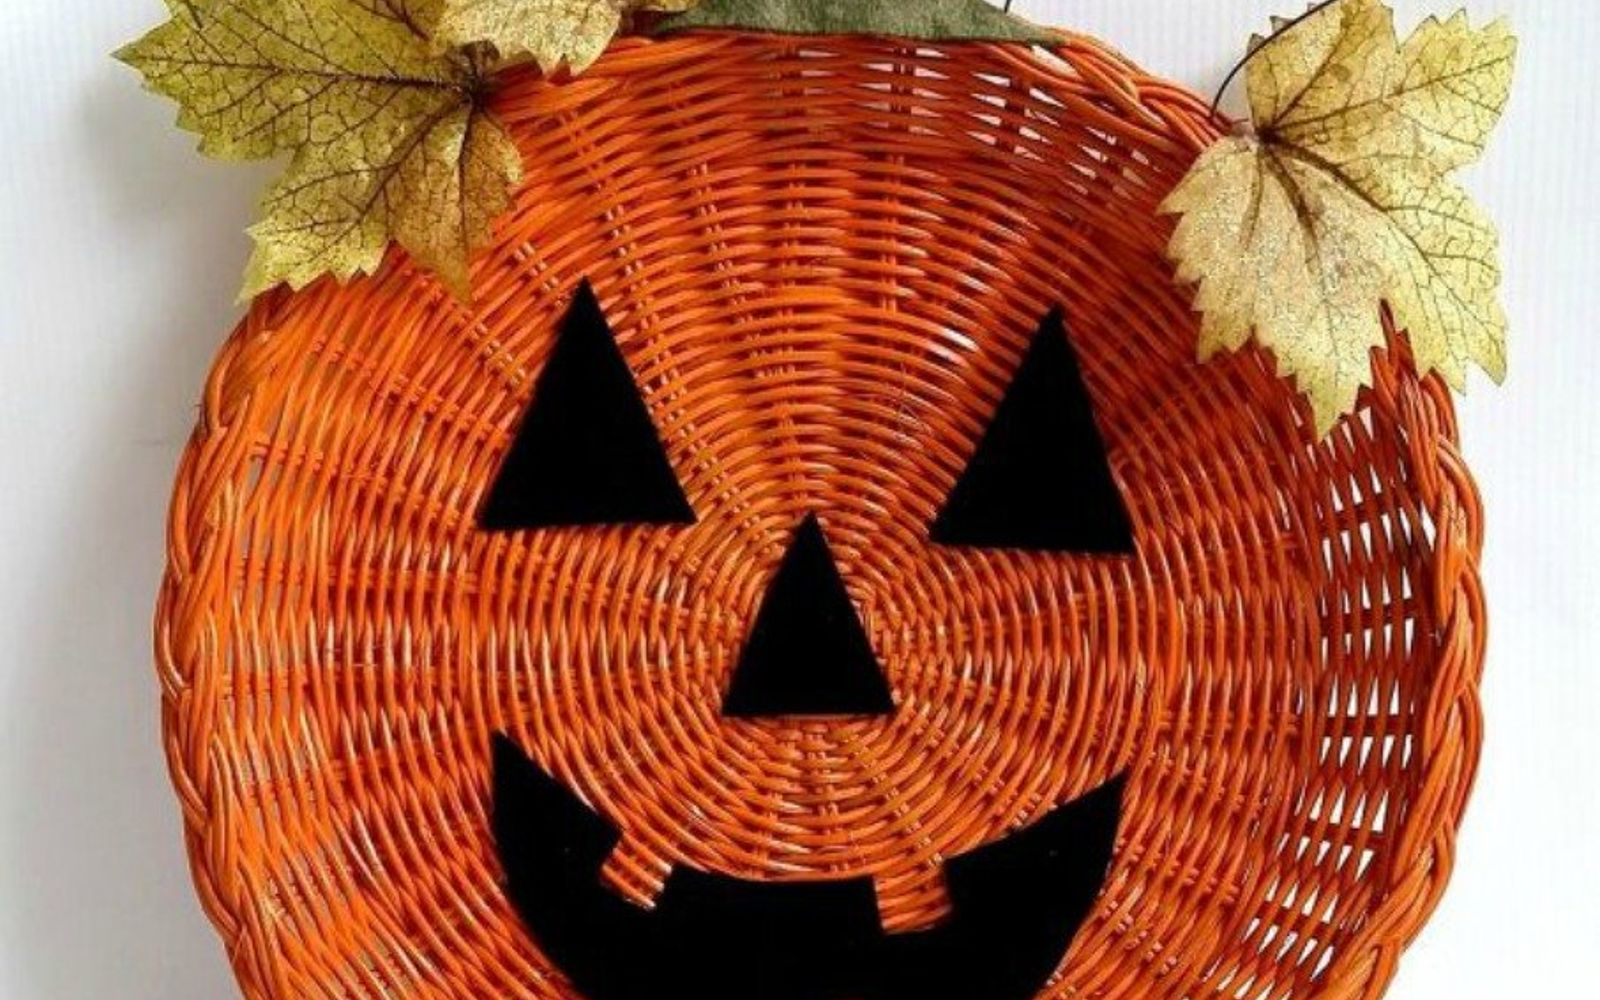 s make wicker trendy again with these brilliant ideas, painted furniture, After An adorable jack o lantern wreath